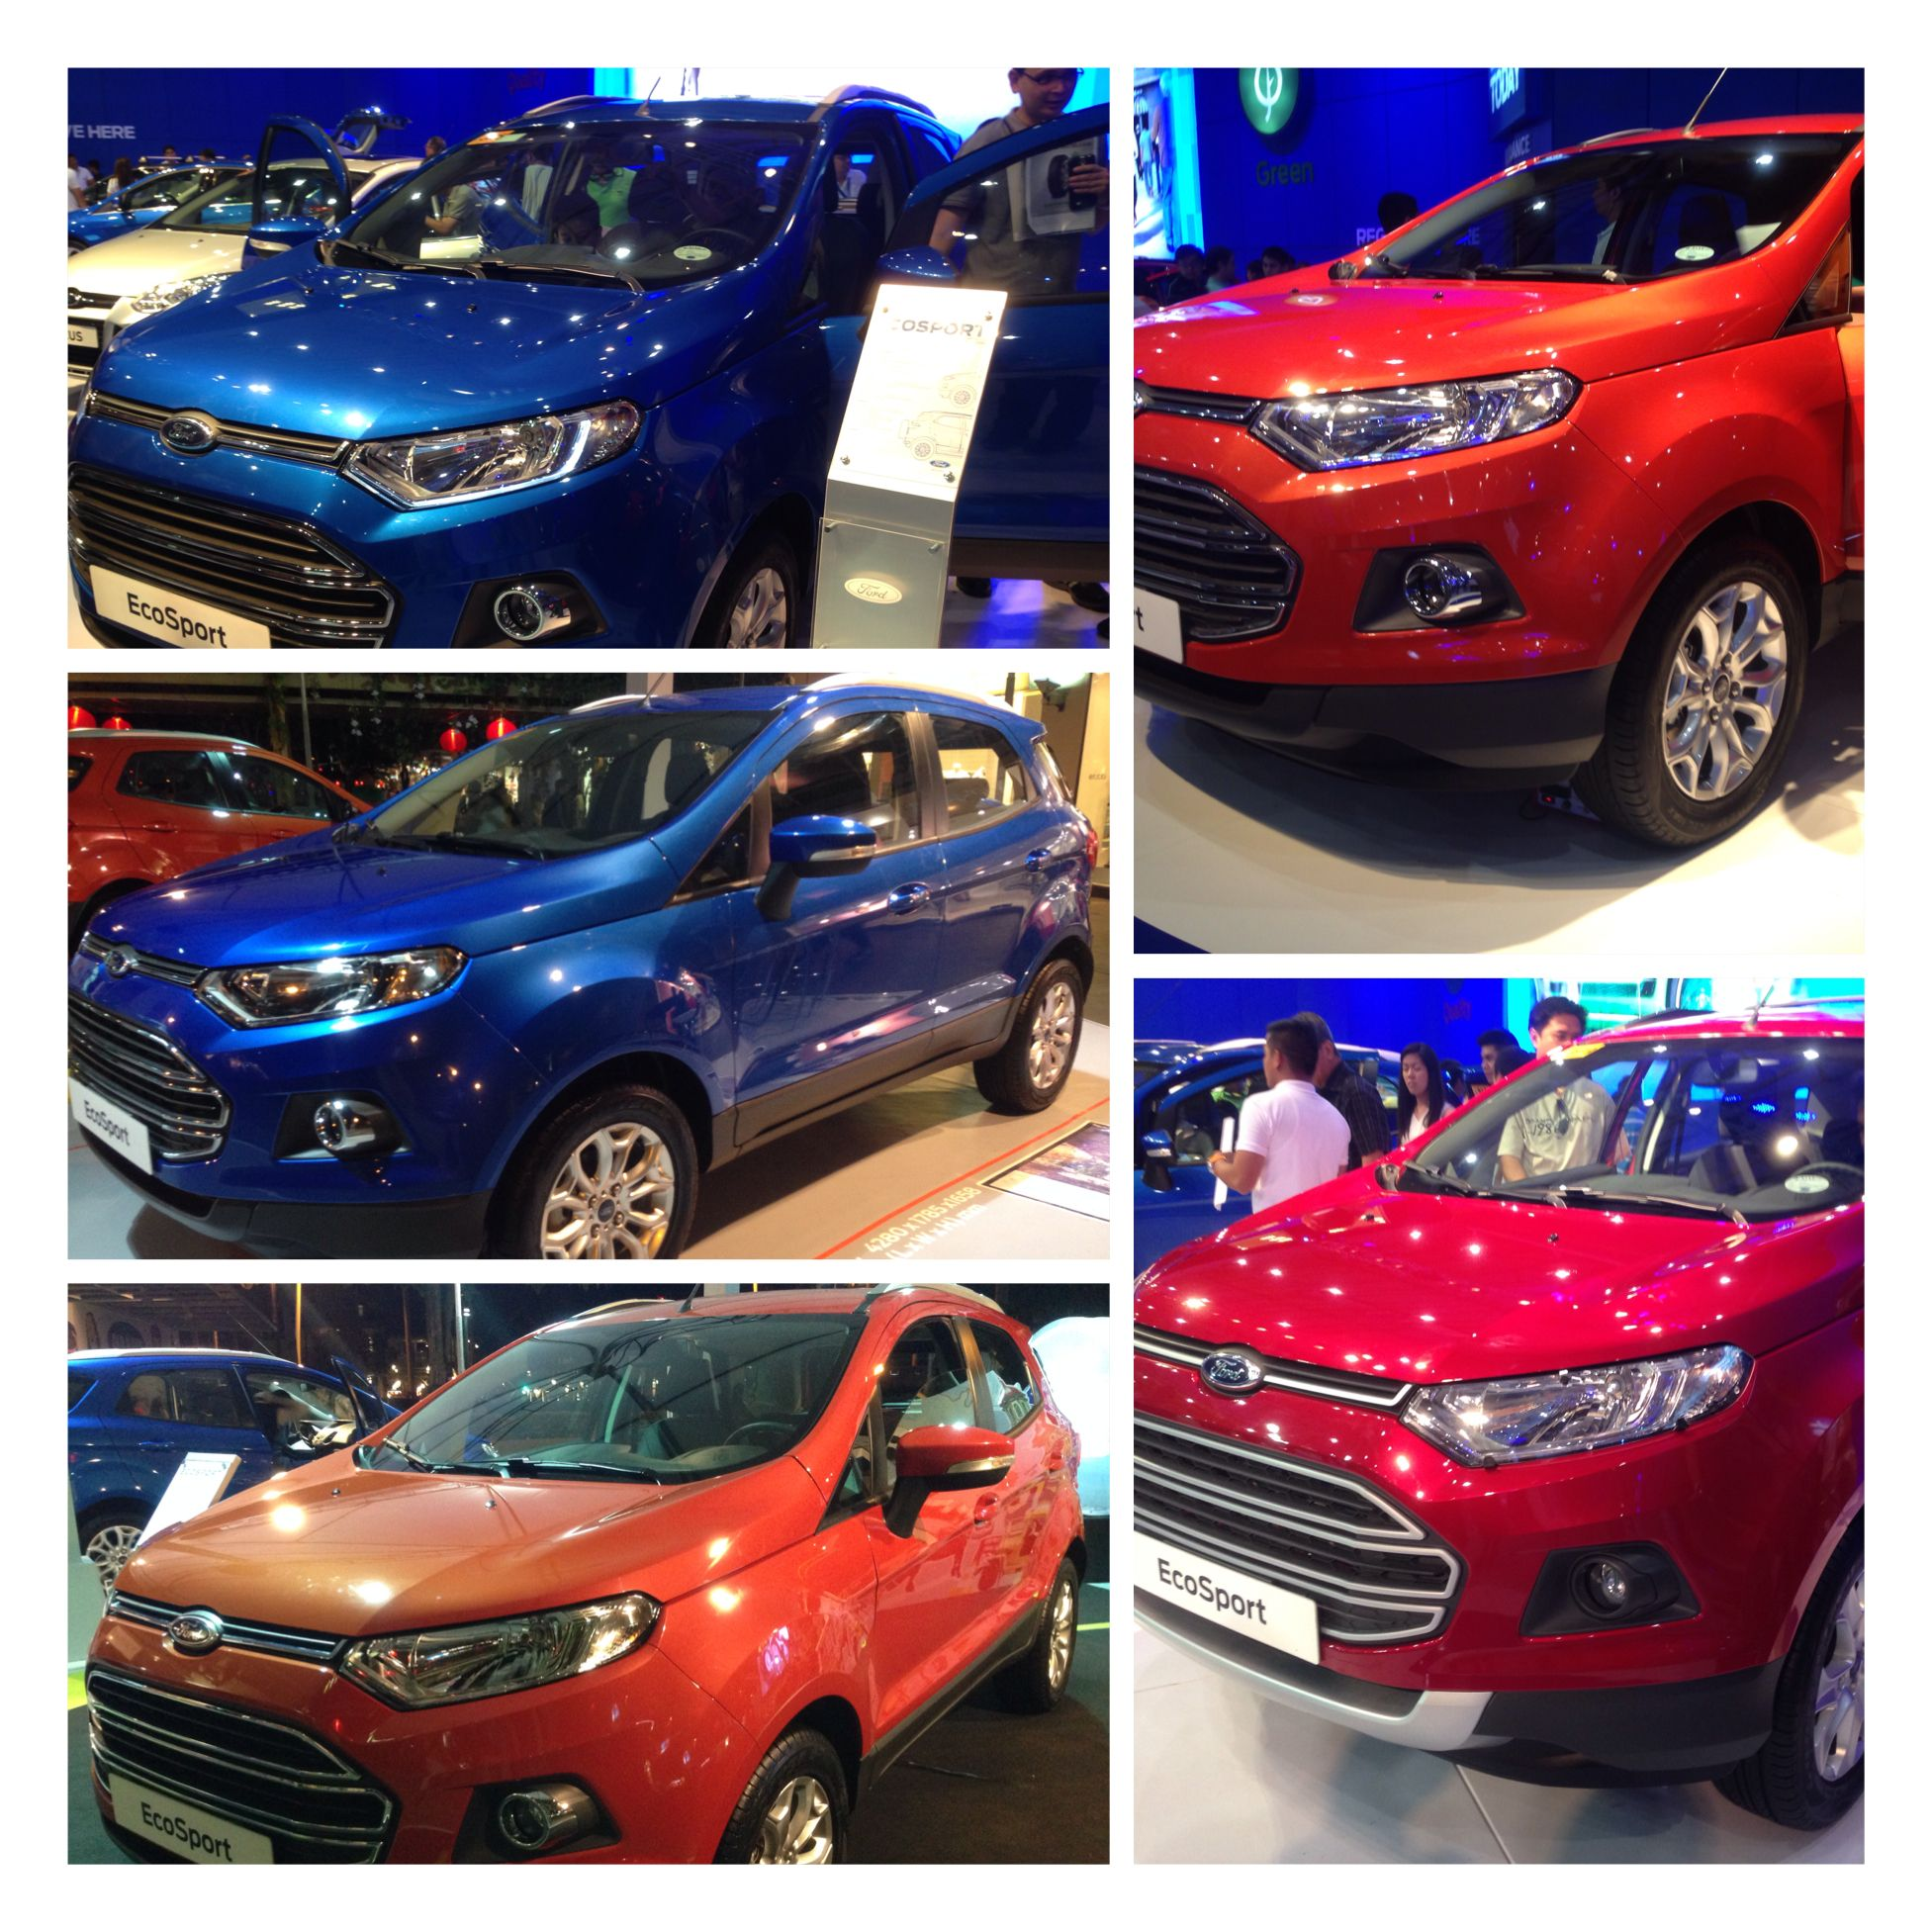 FORD ECOSPORT ECOSPORT 1.5L AT TITANIUM SRP:975,000 ECOSPORT 1.5L AT TREND SRP:875,000 ECOSPORT 1.5L MT TREND SRP:825,000 ECOSPORT 1.5L MT AMBIENTE SRP:775,000  For more details please contact FREJEN B. CAPAO 0917-2040373